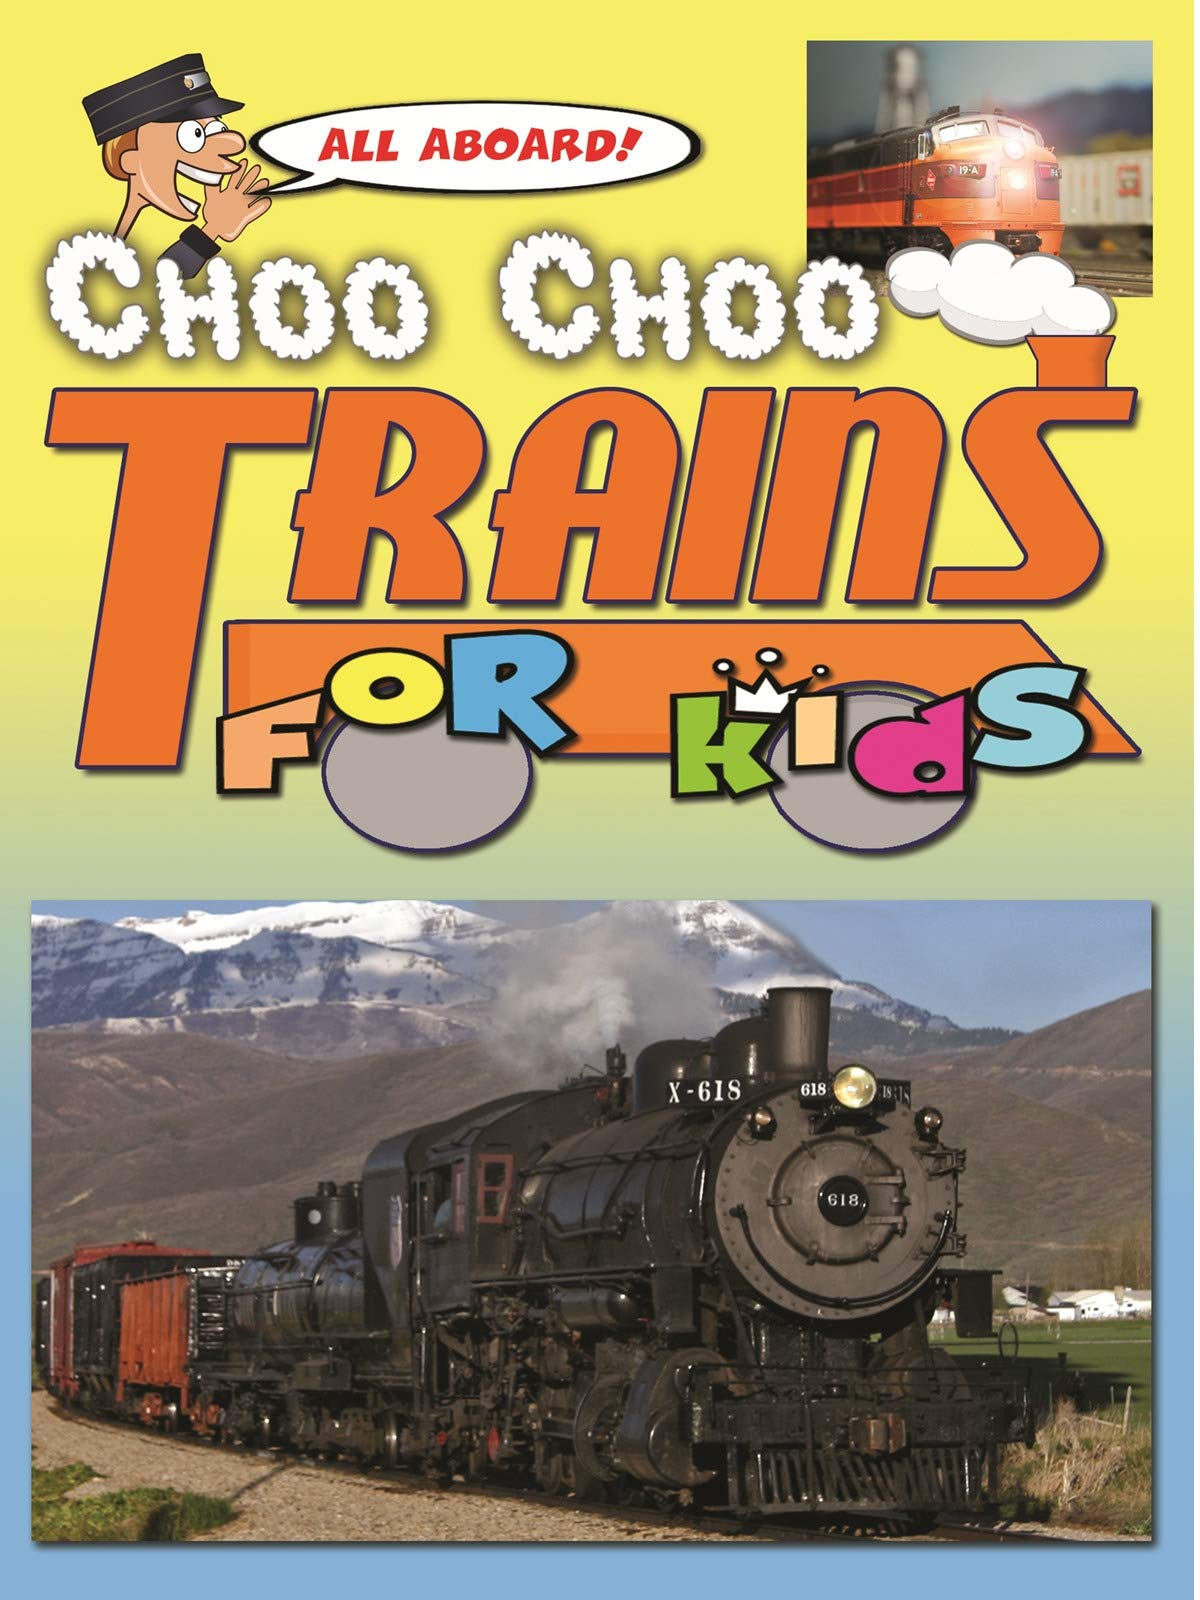 Clip: All Aboard! Choo Choo Trains For Kids